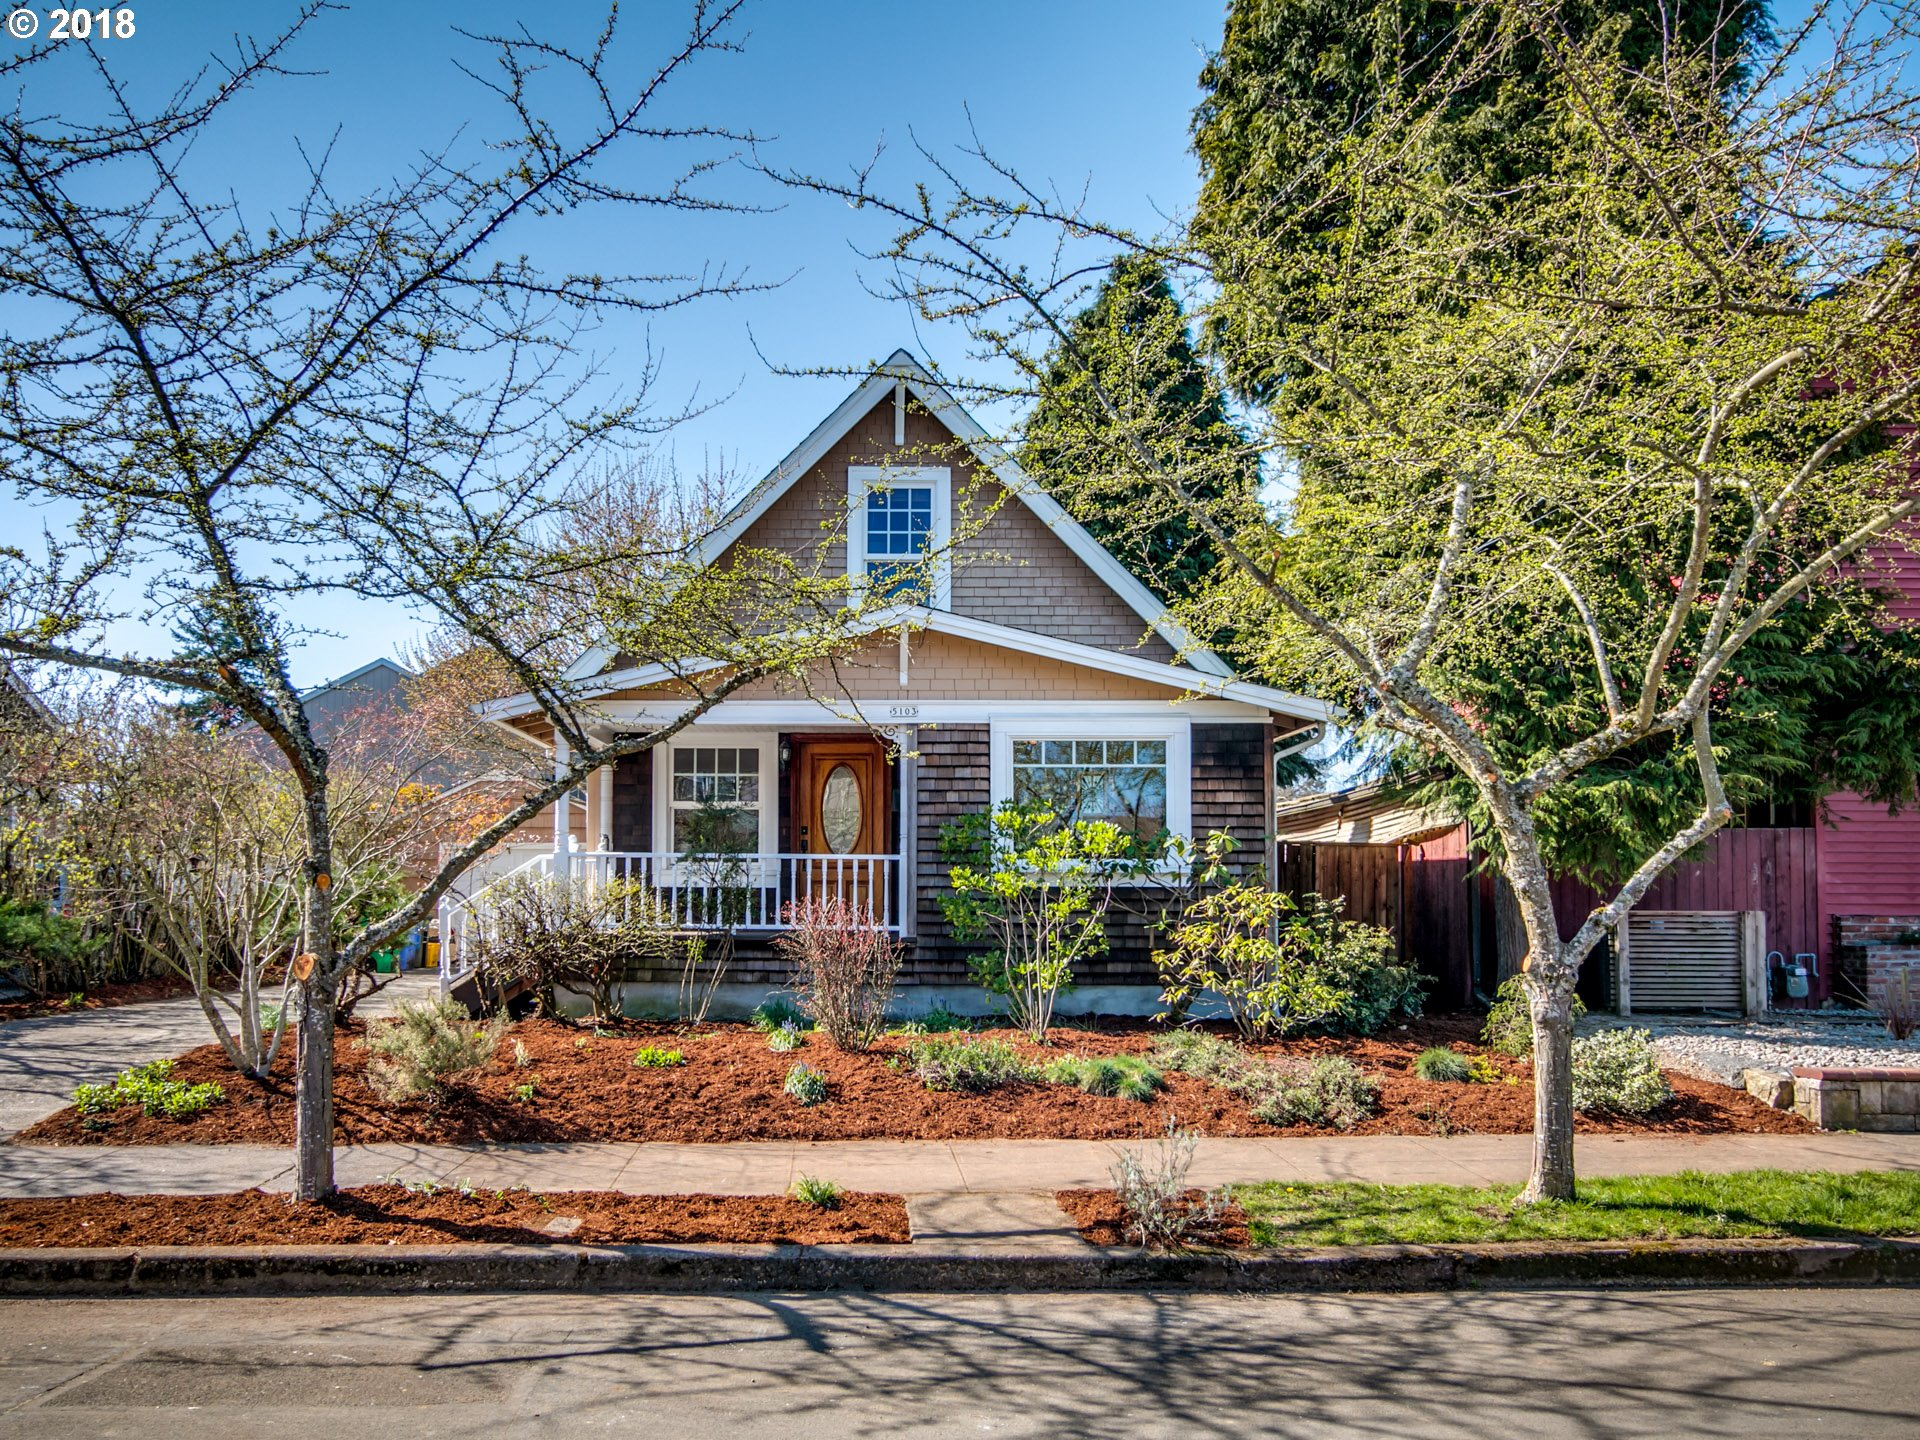 Photo of 5103 SE 49TH AVE, Portland, OR 97206 (MLS # 18296632)